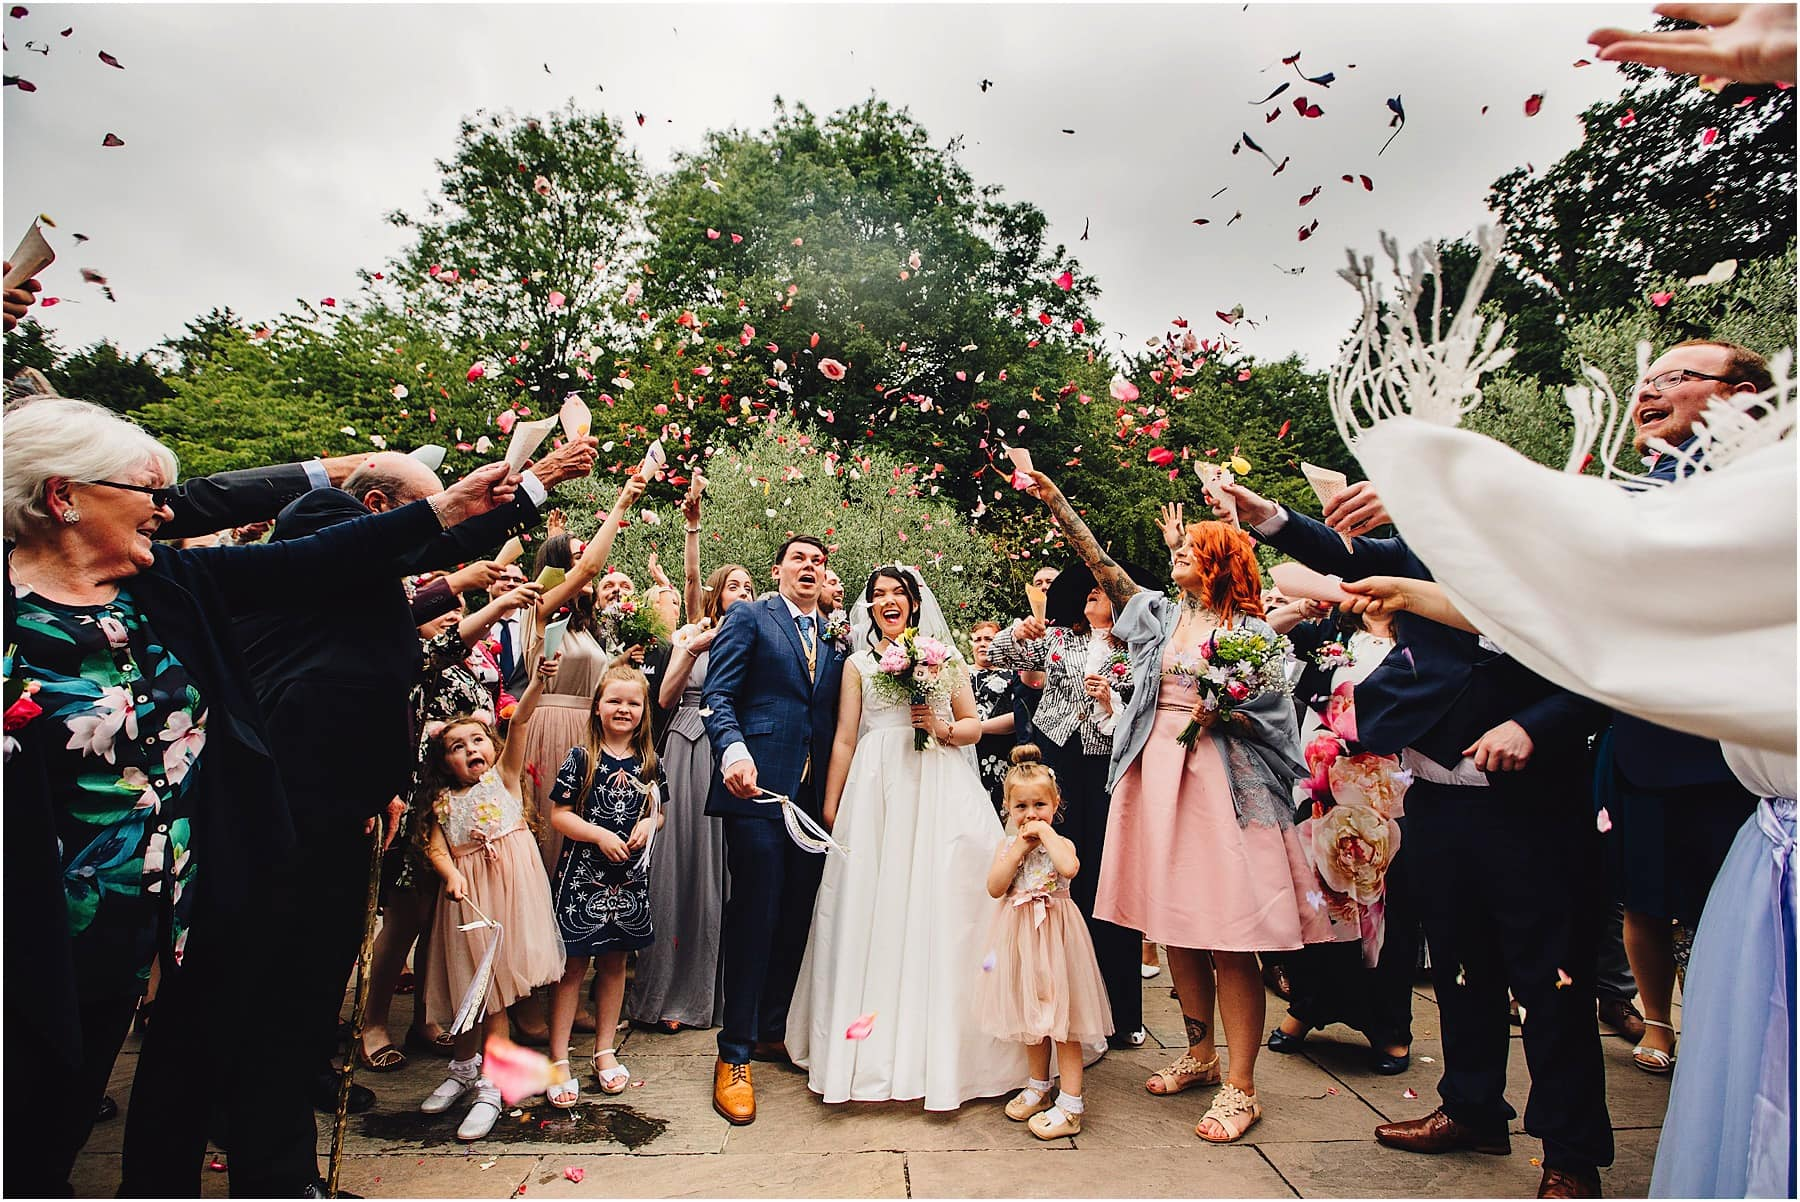 confetti throw at Shustoke barns